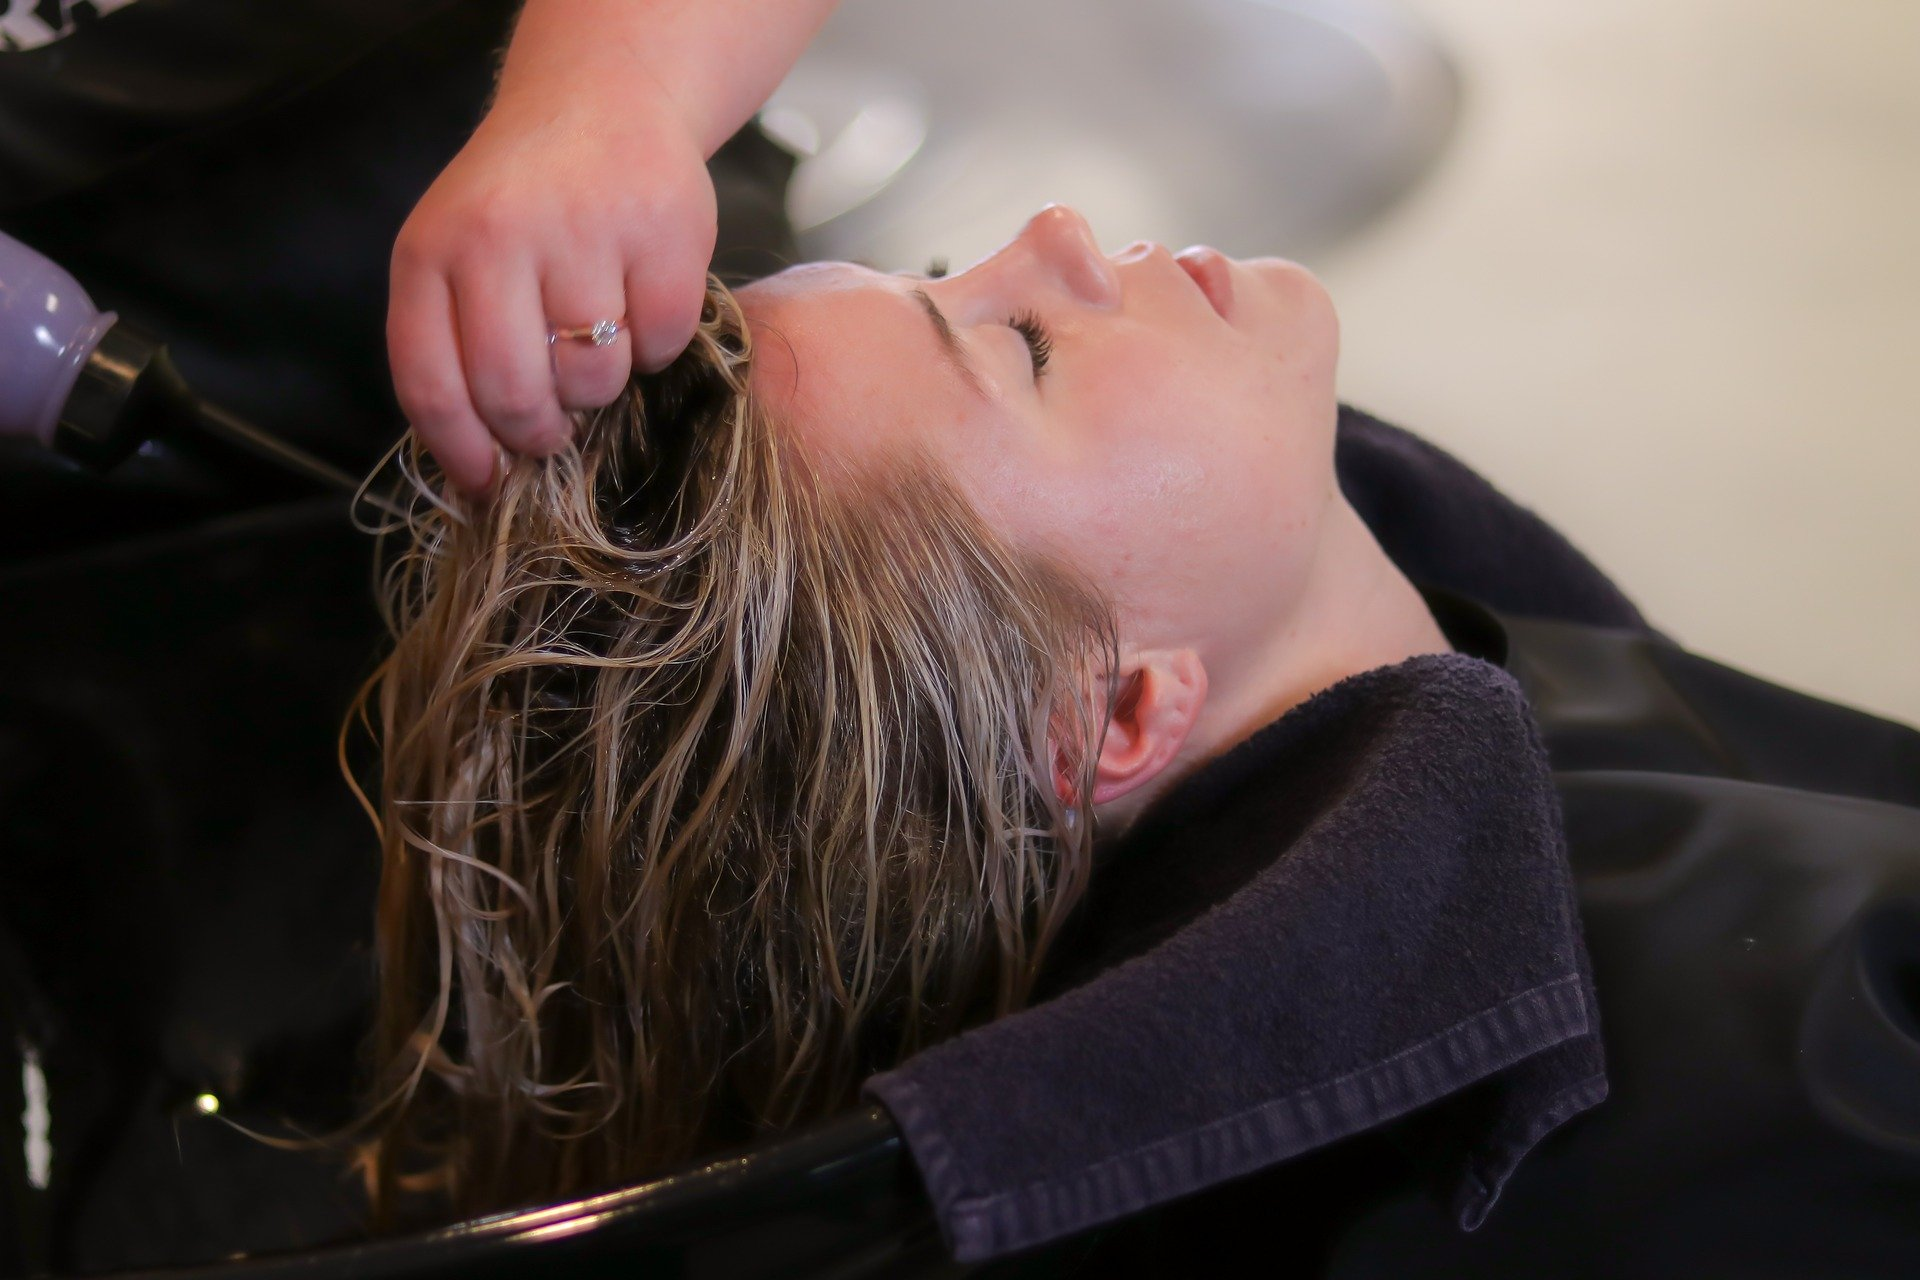 Coronavirus: Hair salons must close and be added to the lockdown list